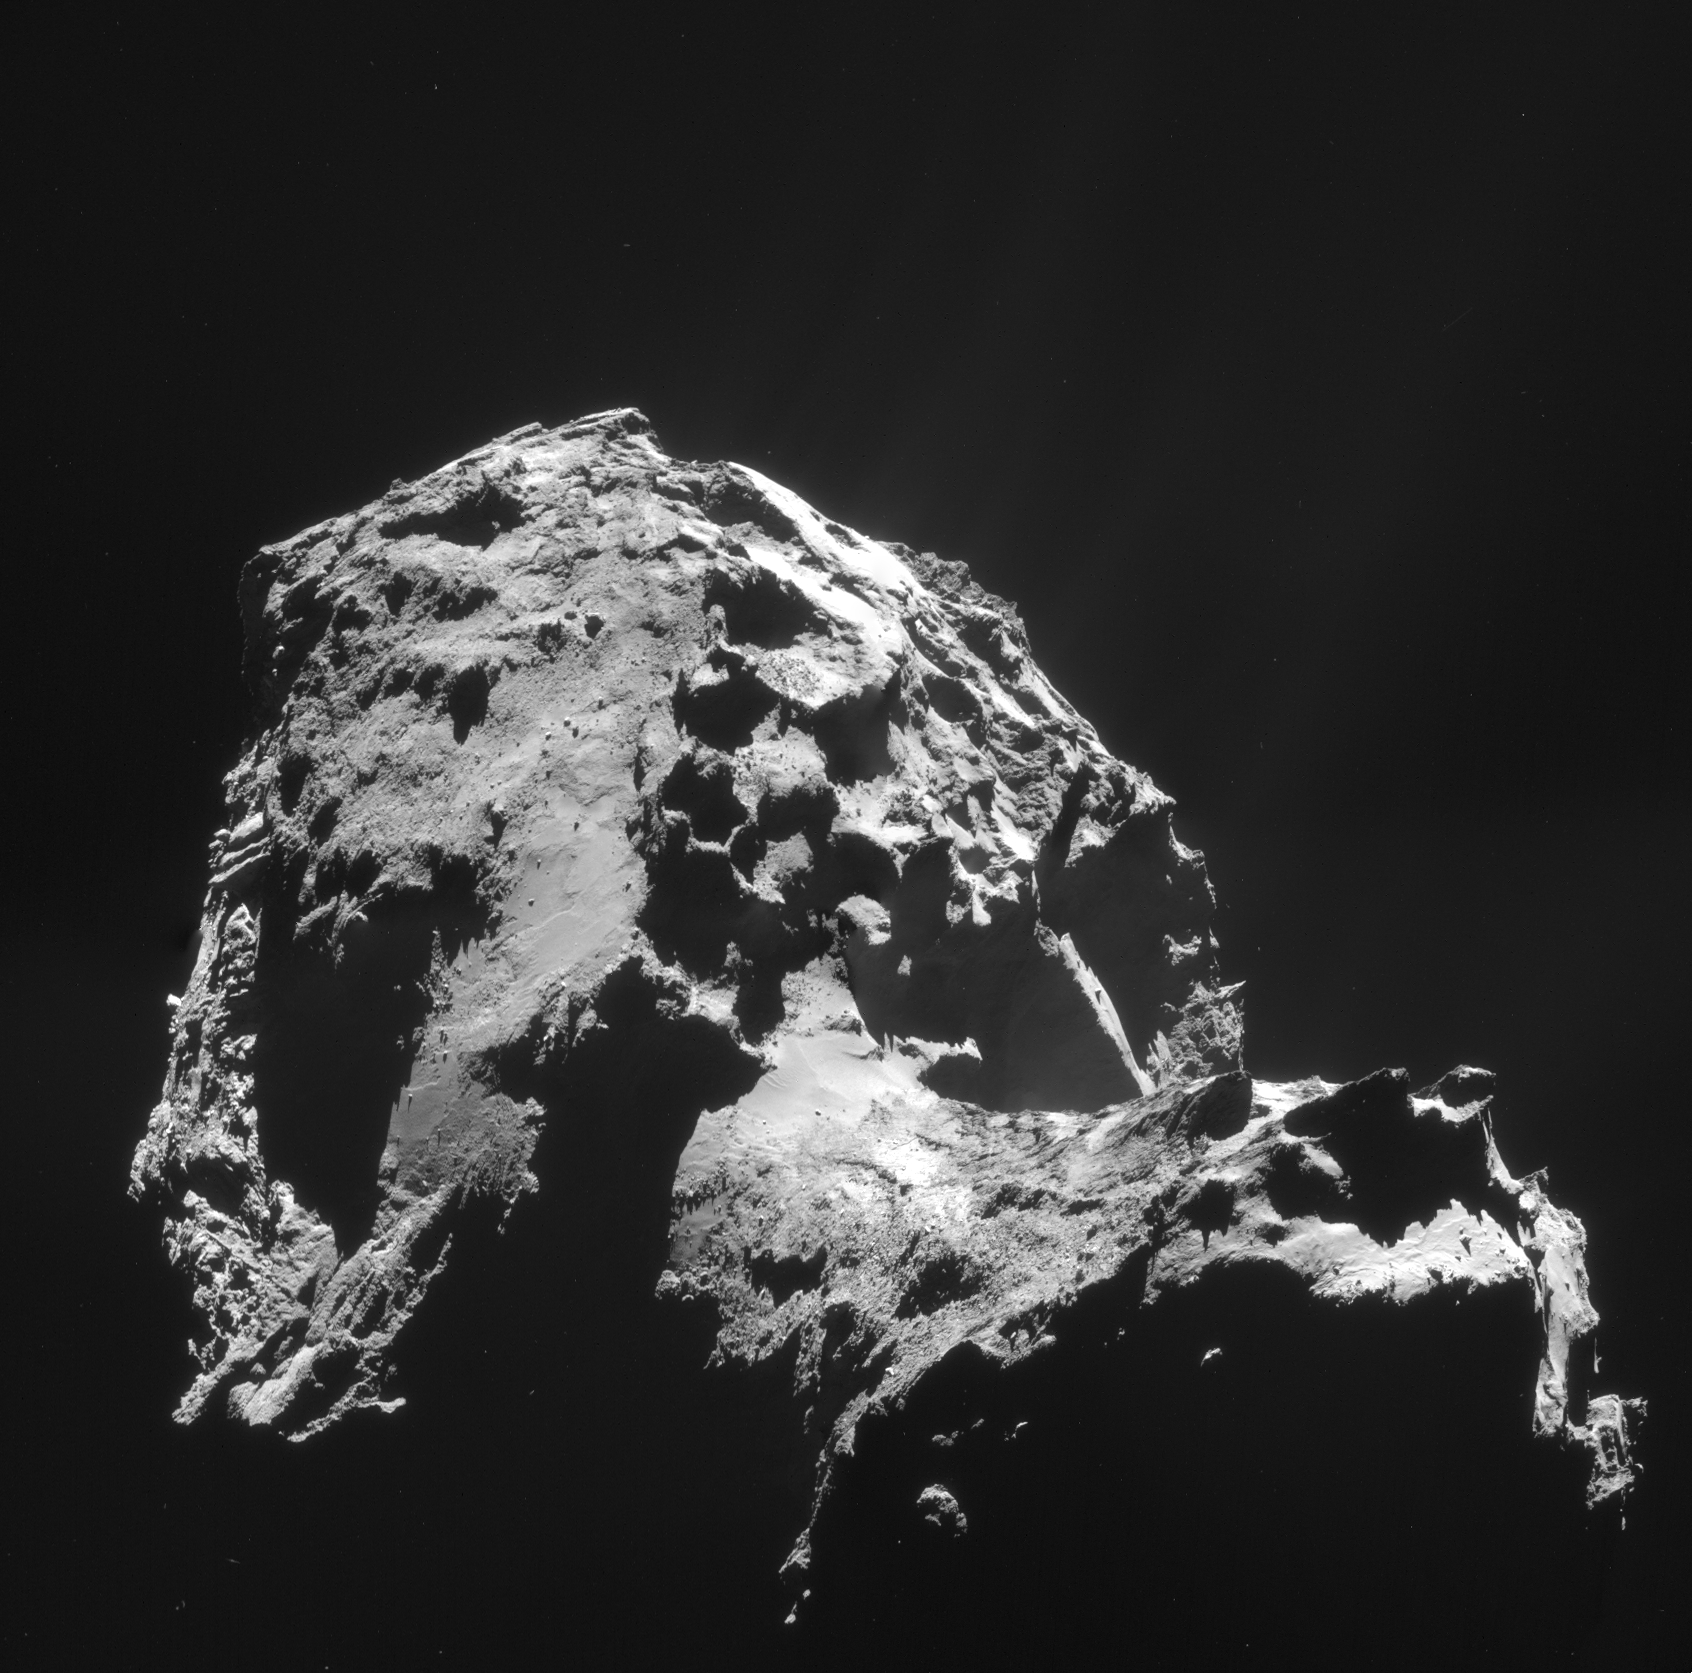 Four-image mosaic of Comet 67P/C-G comprising images taken on 1 January 2015. Credits: ESA/Rosetta/NAVCAM – CC BY-SA IGO 3.0